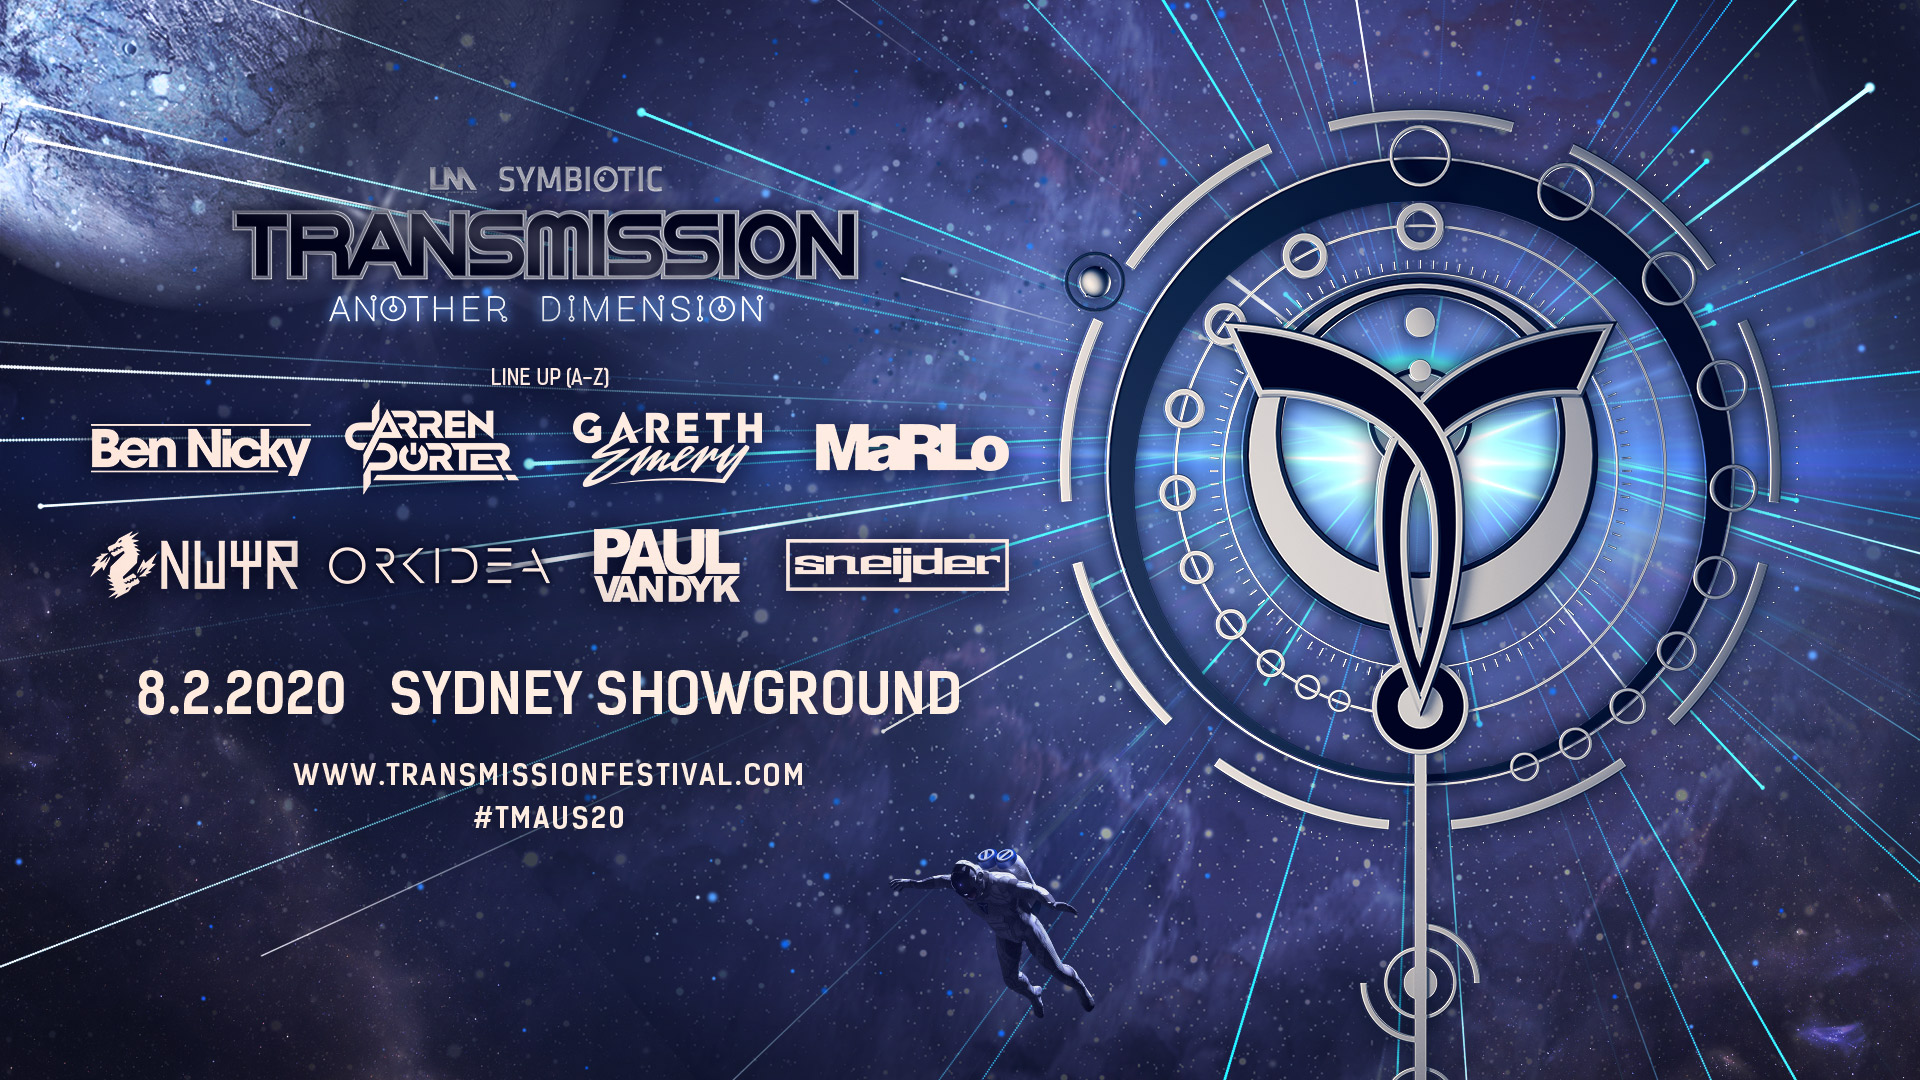 Tickets for Transmission: Another Dimension  2020 in Sydney Showground from Ticketbooth